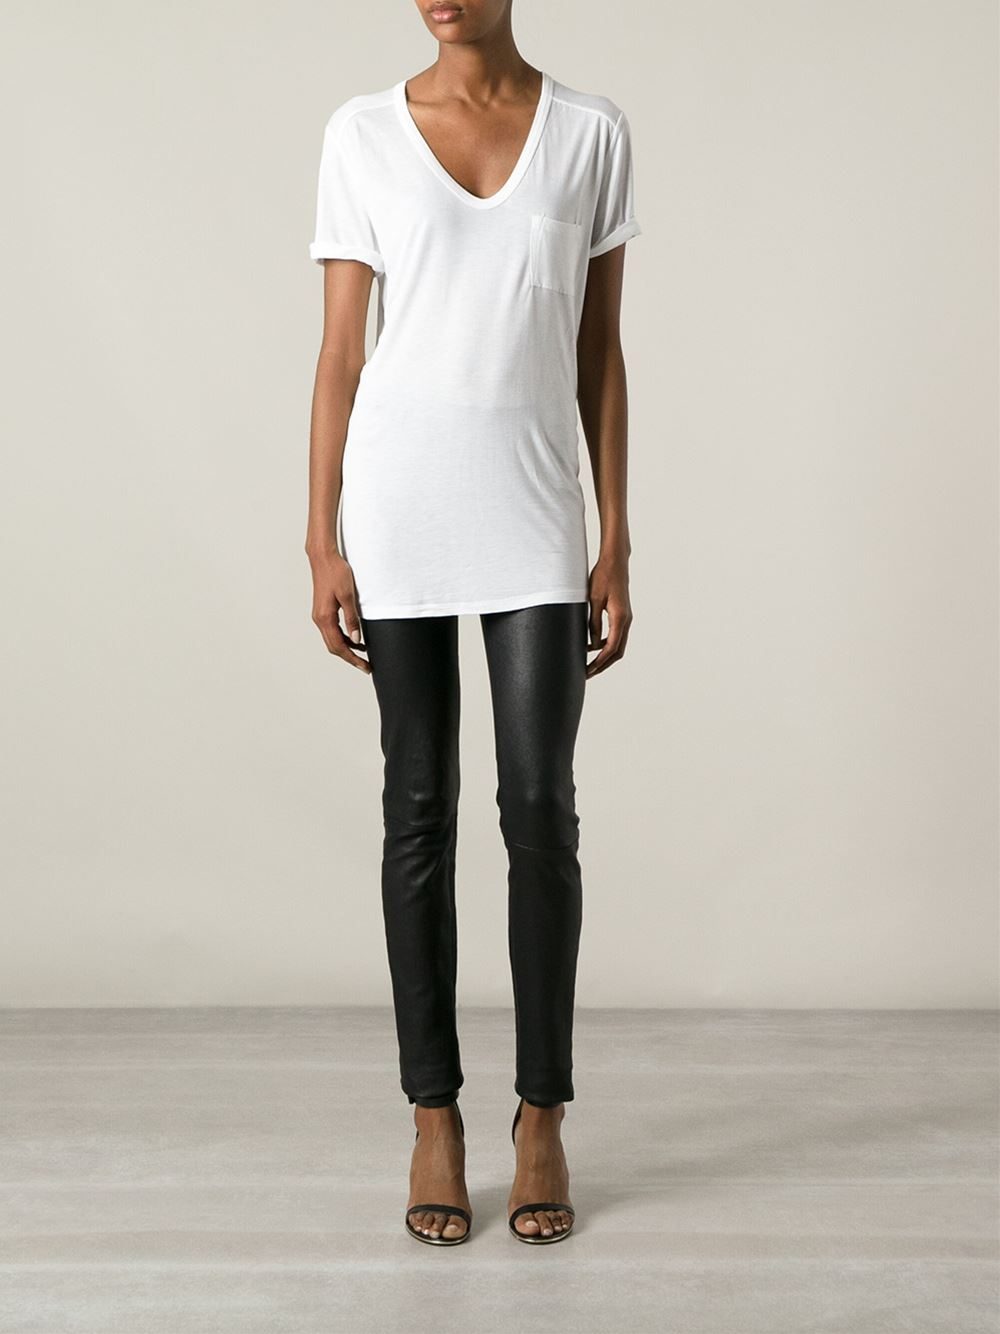 t by alexander wang chest pocket t shirt in white lyst. Black Bedroom Furniture Sets. Home Design Ideas